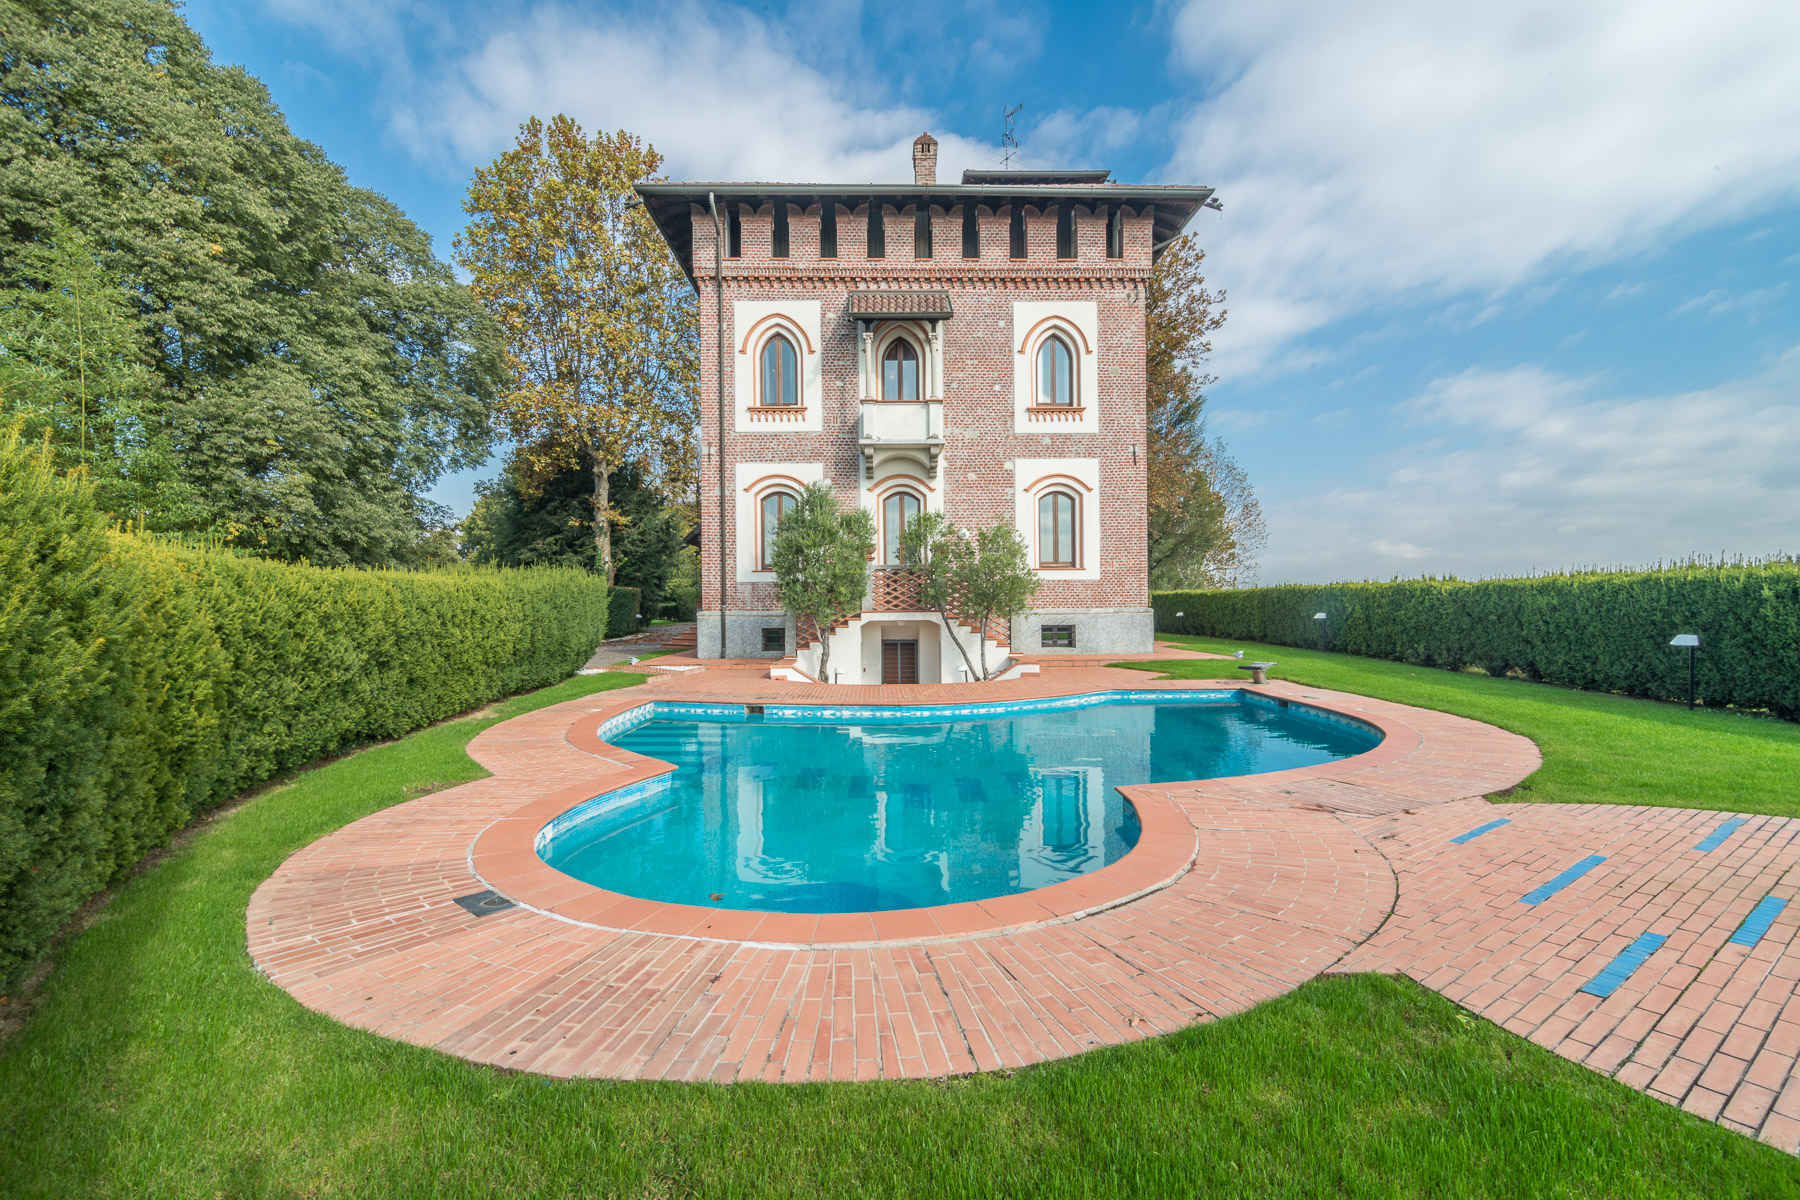 Pretigious historical villa close to Milan